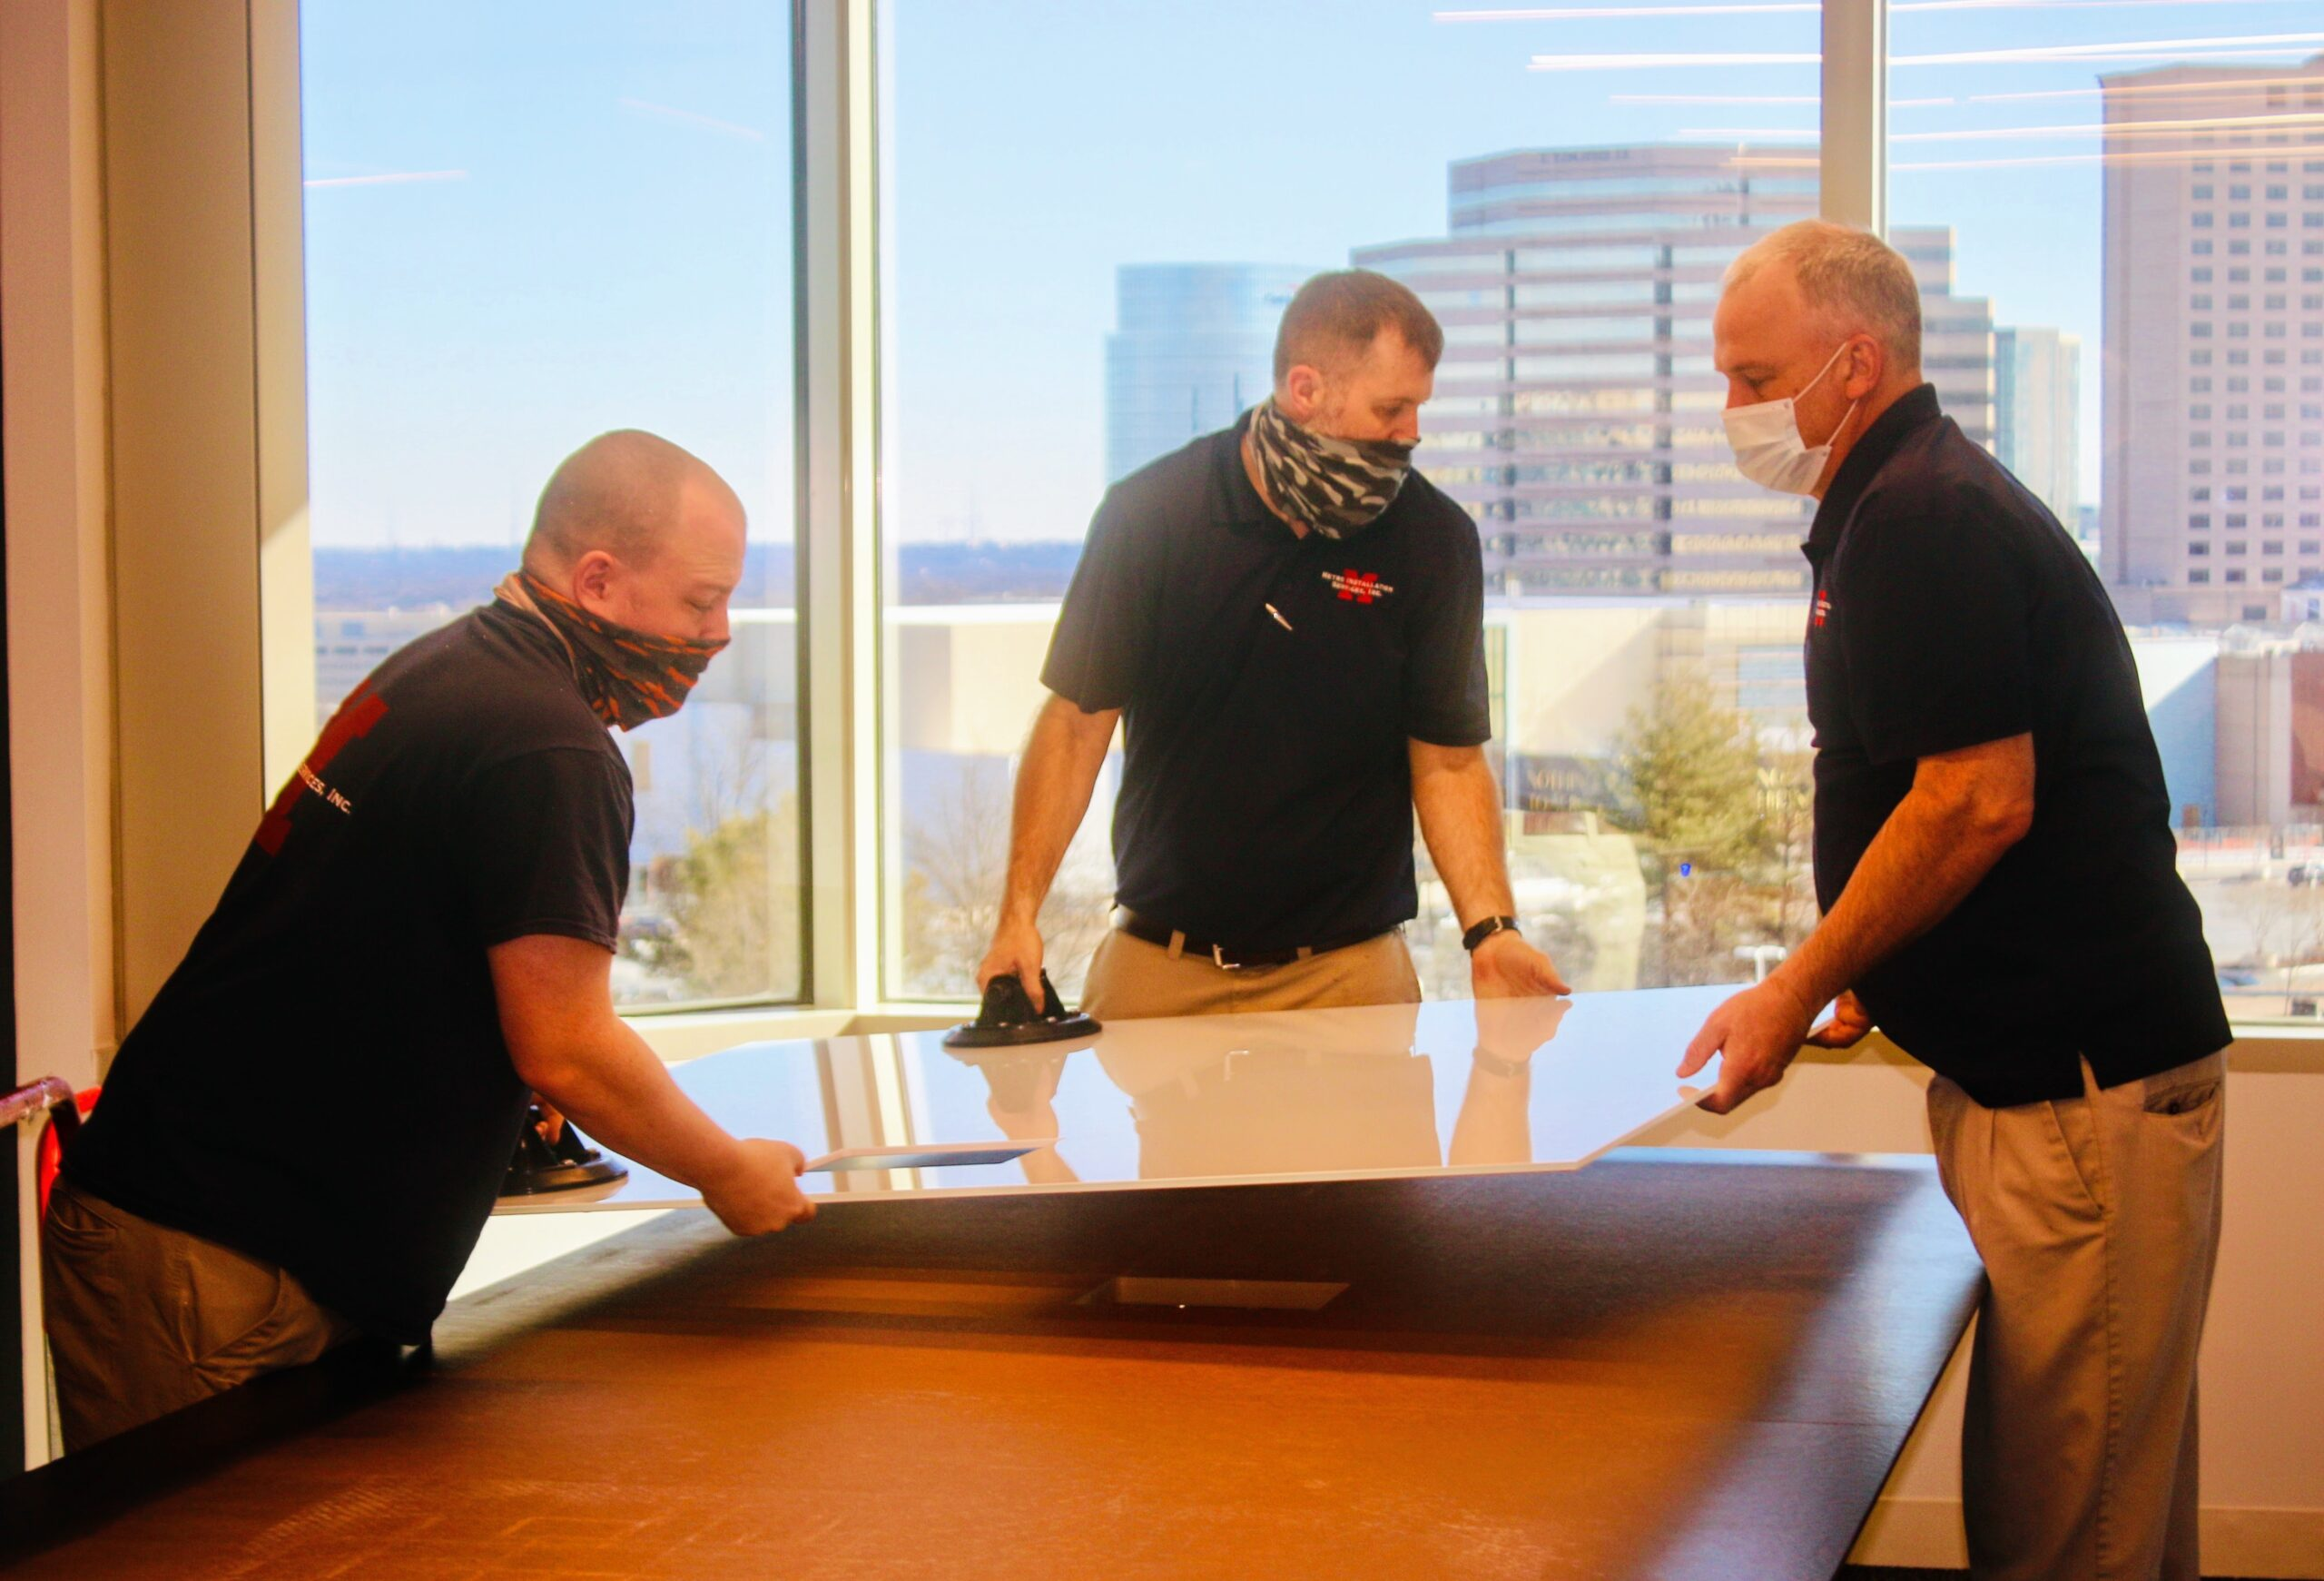 Metro installers assemble conference table